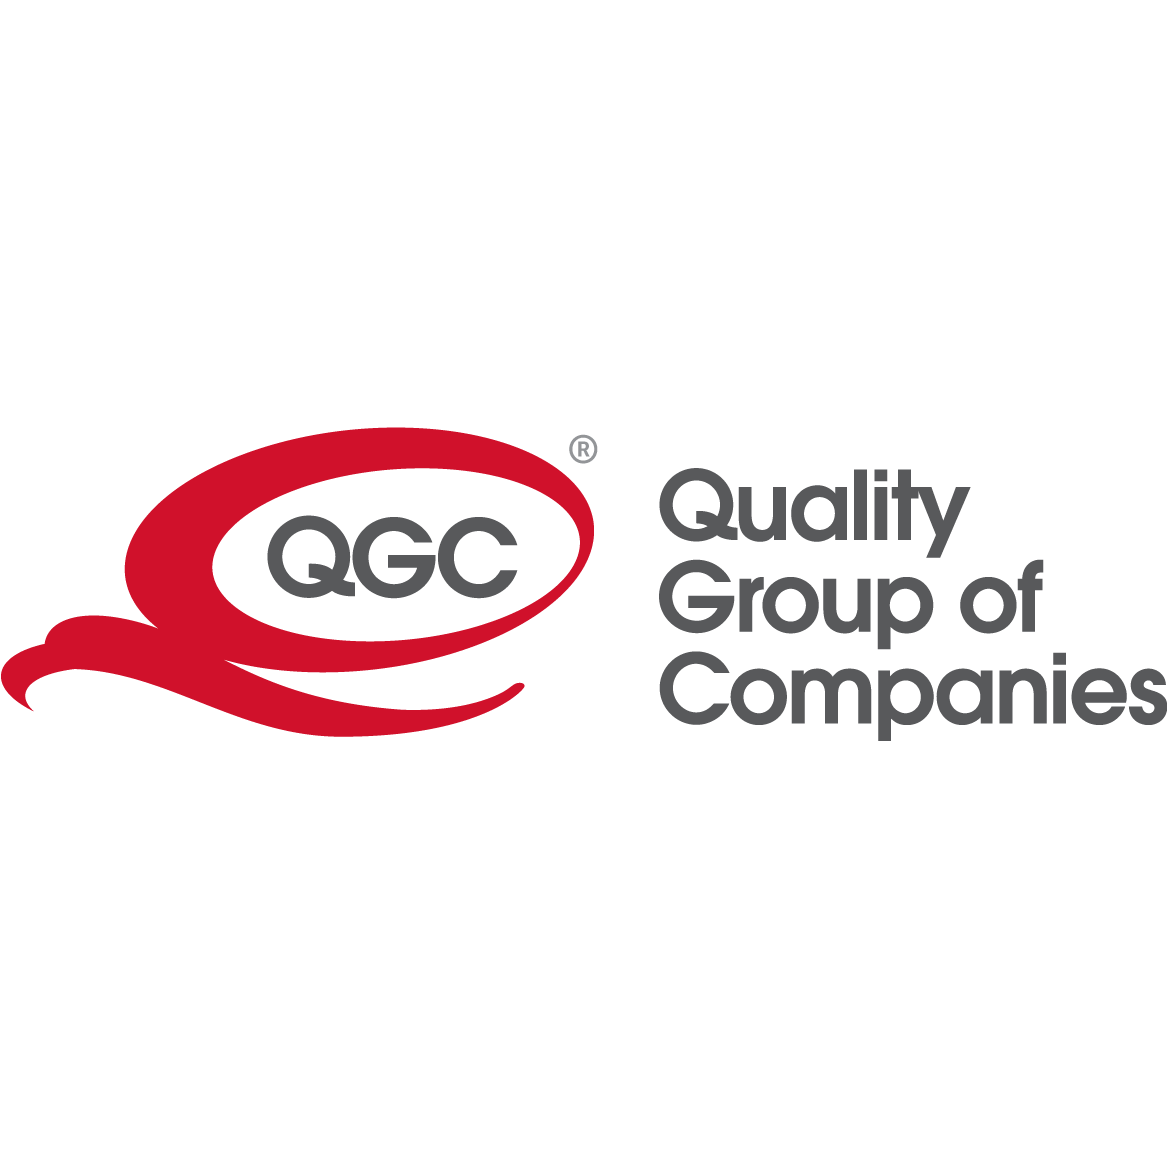 Quality Group of Companies